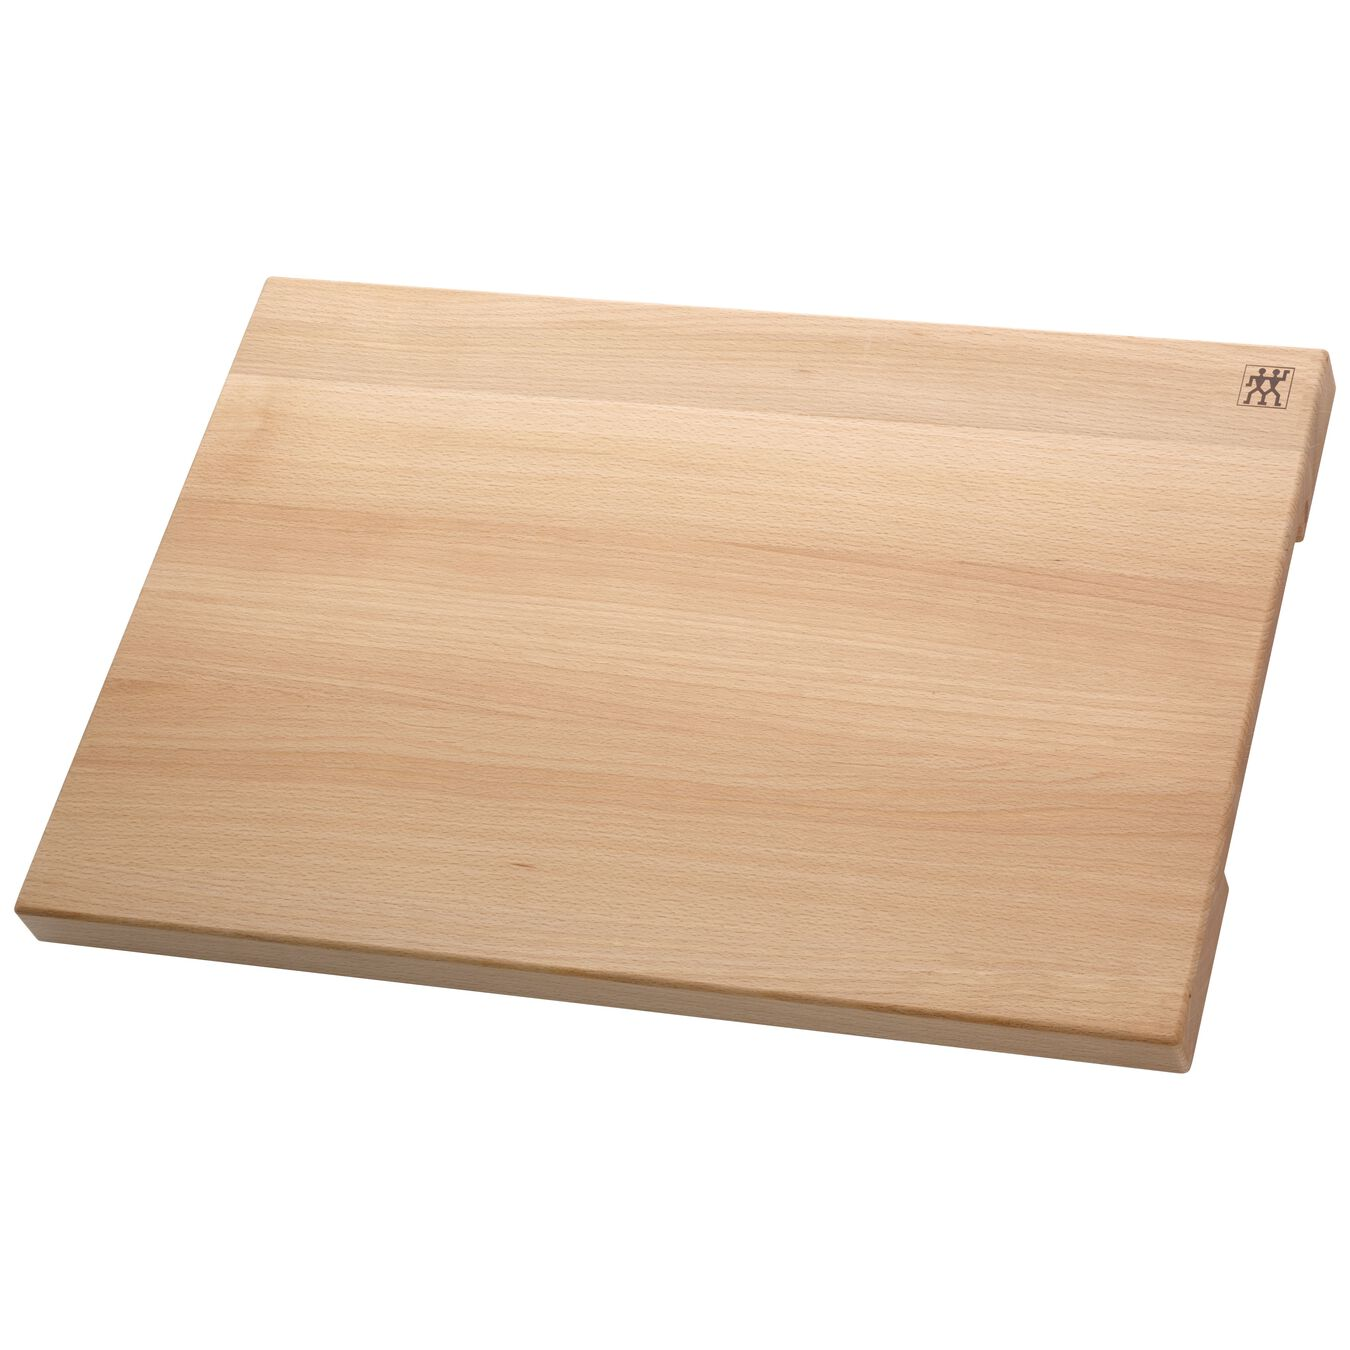 22x16x1.5-inch Natural Beechwood Cutting Board,,large 1